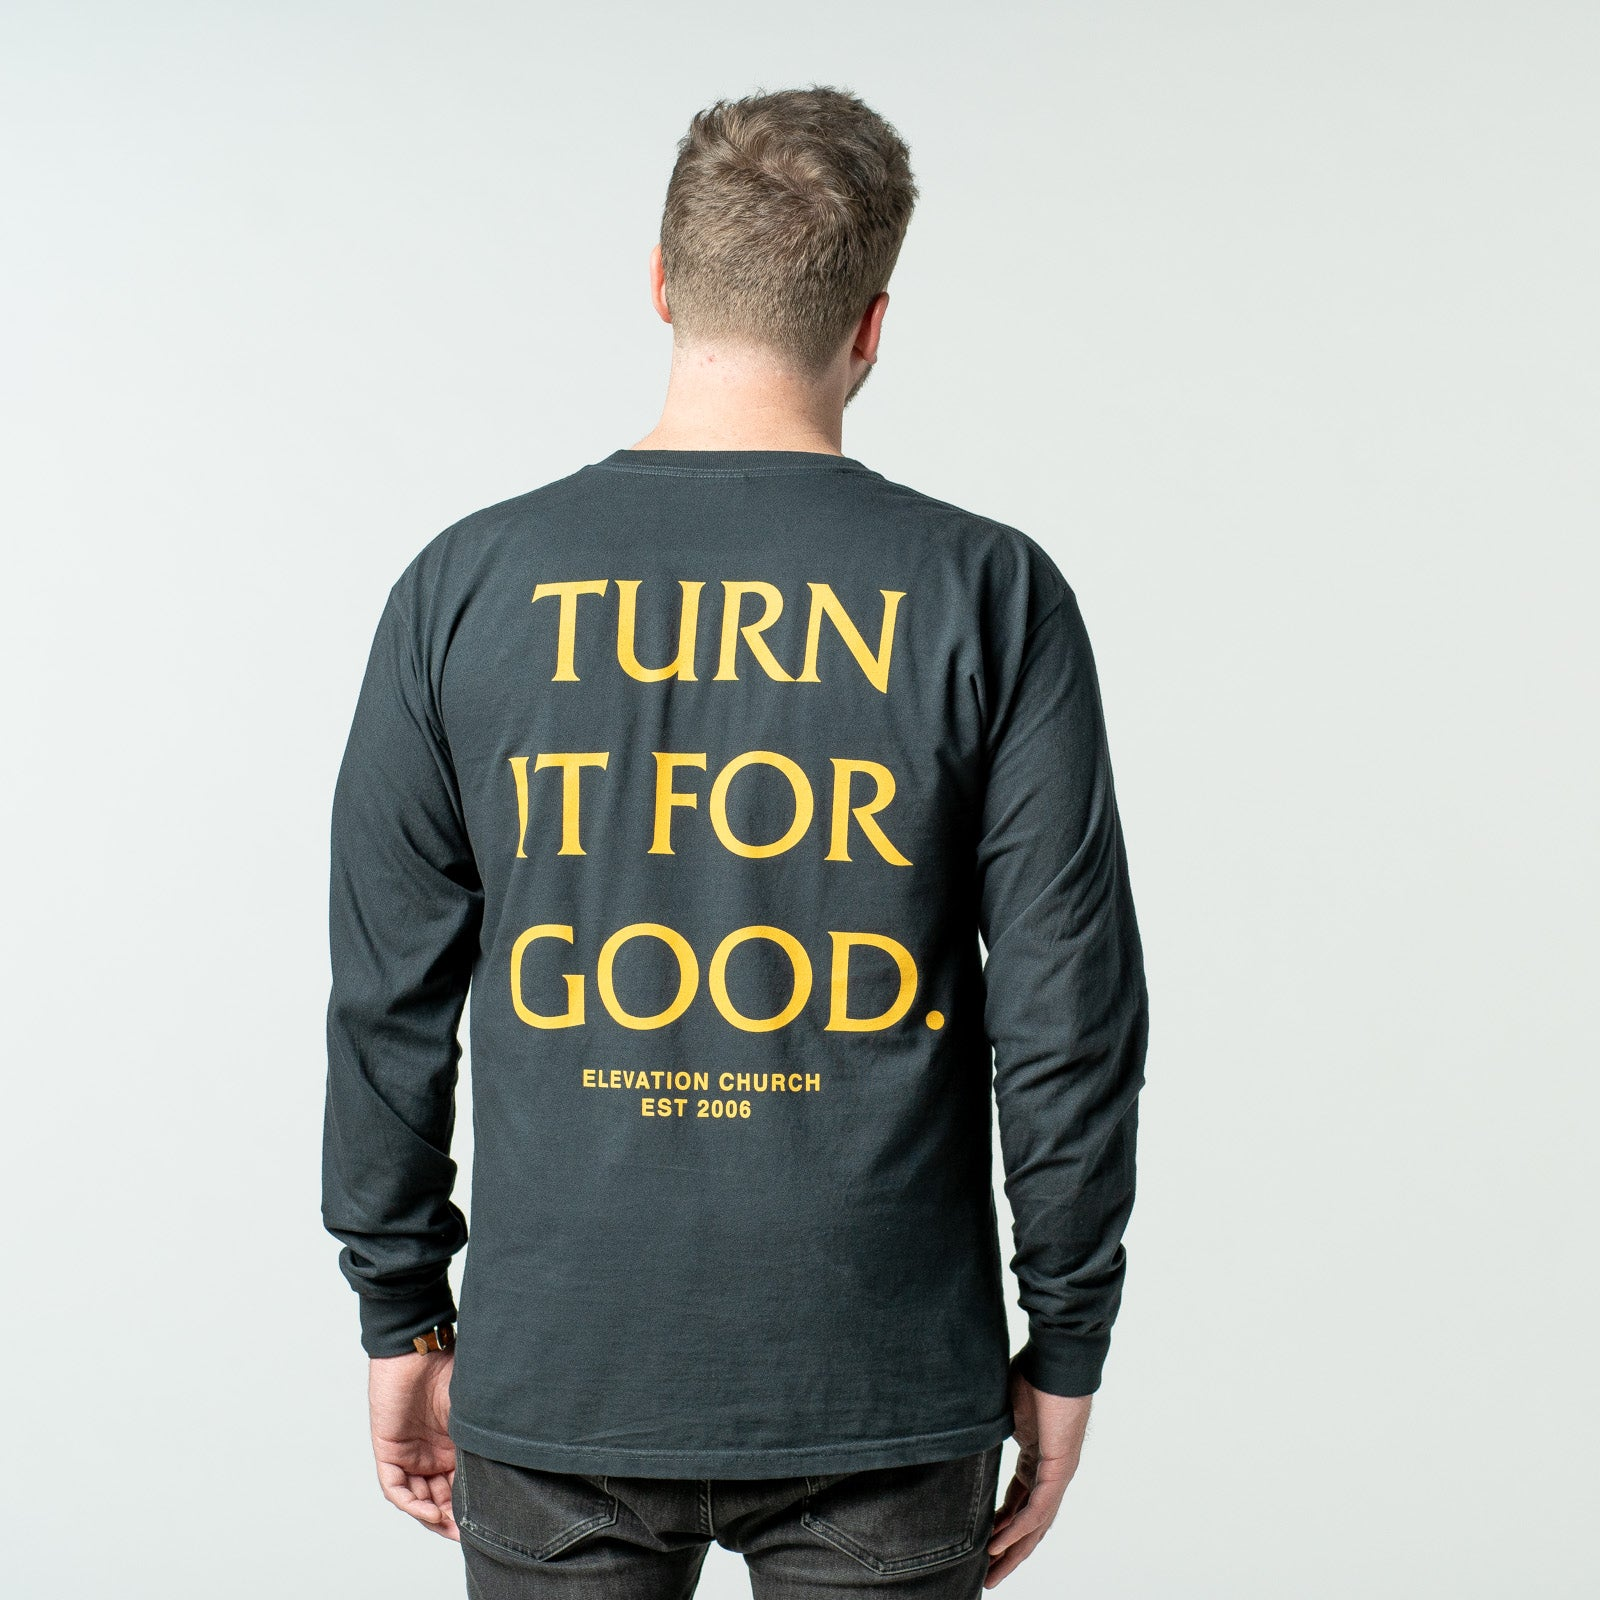 'Turn It For Good' long sleeve tee